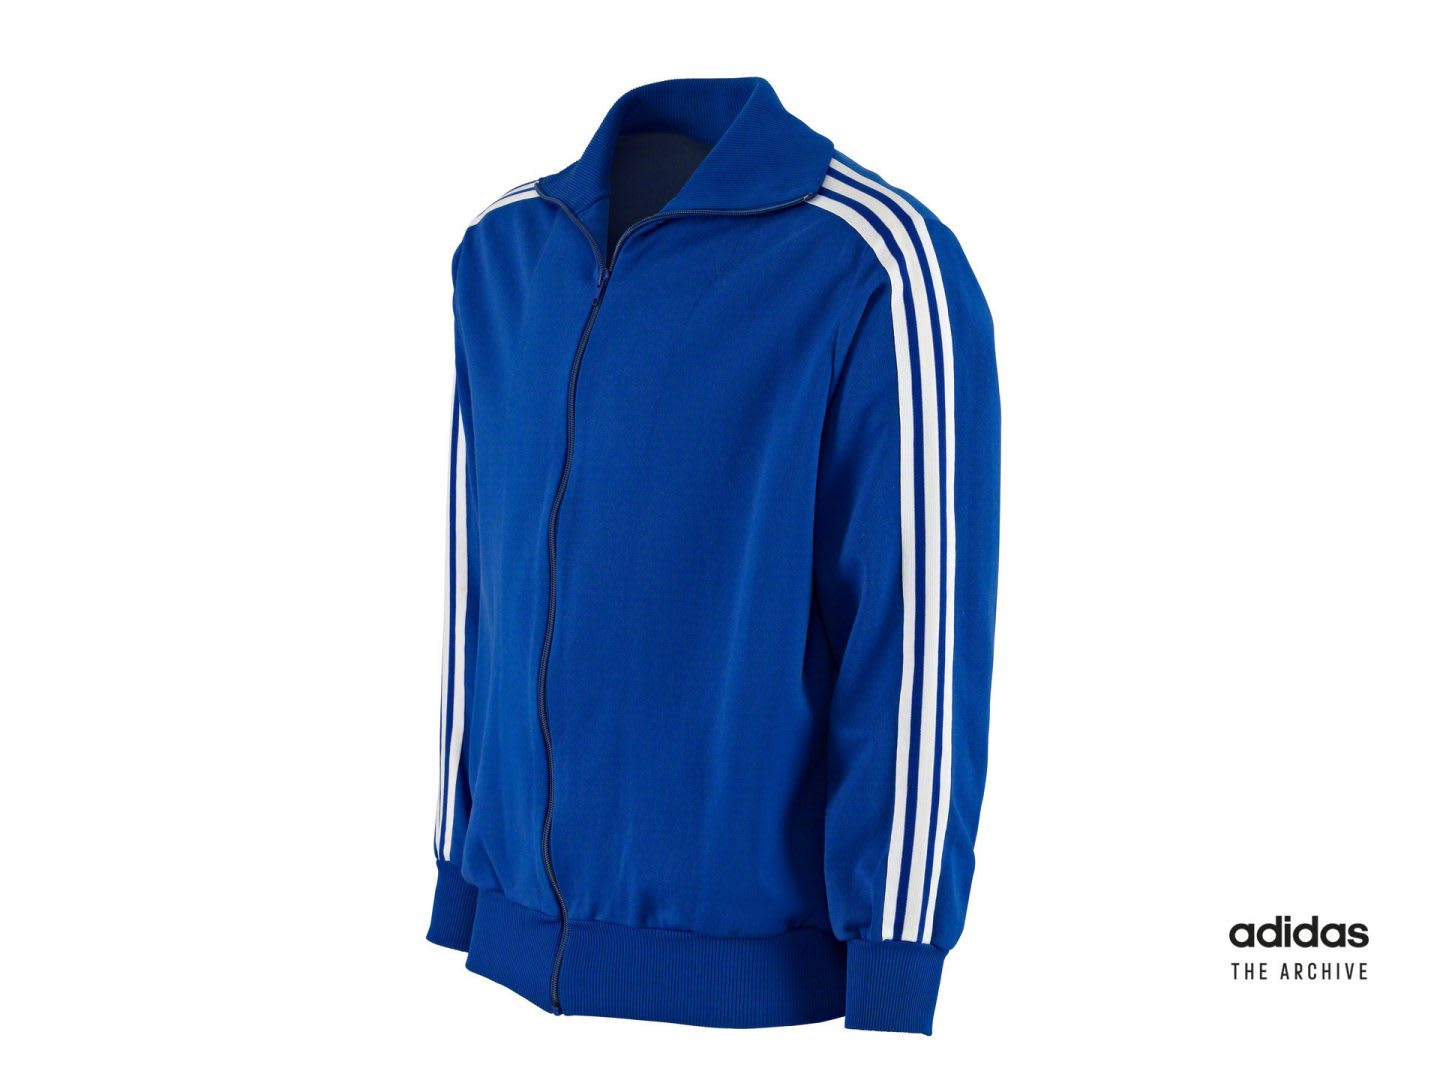 Blue vintage tracksuit jacket from adidas, Adolf, Dassler, Adi, adidas, sports, apparel, shoemaker, history, archive, tracksuit